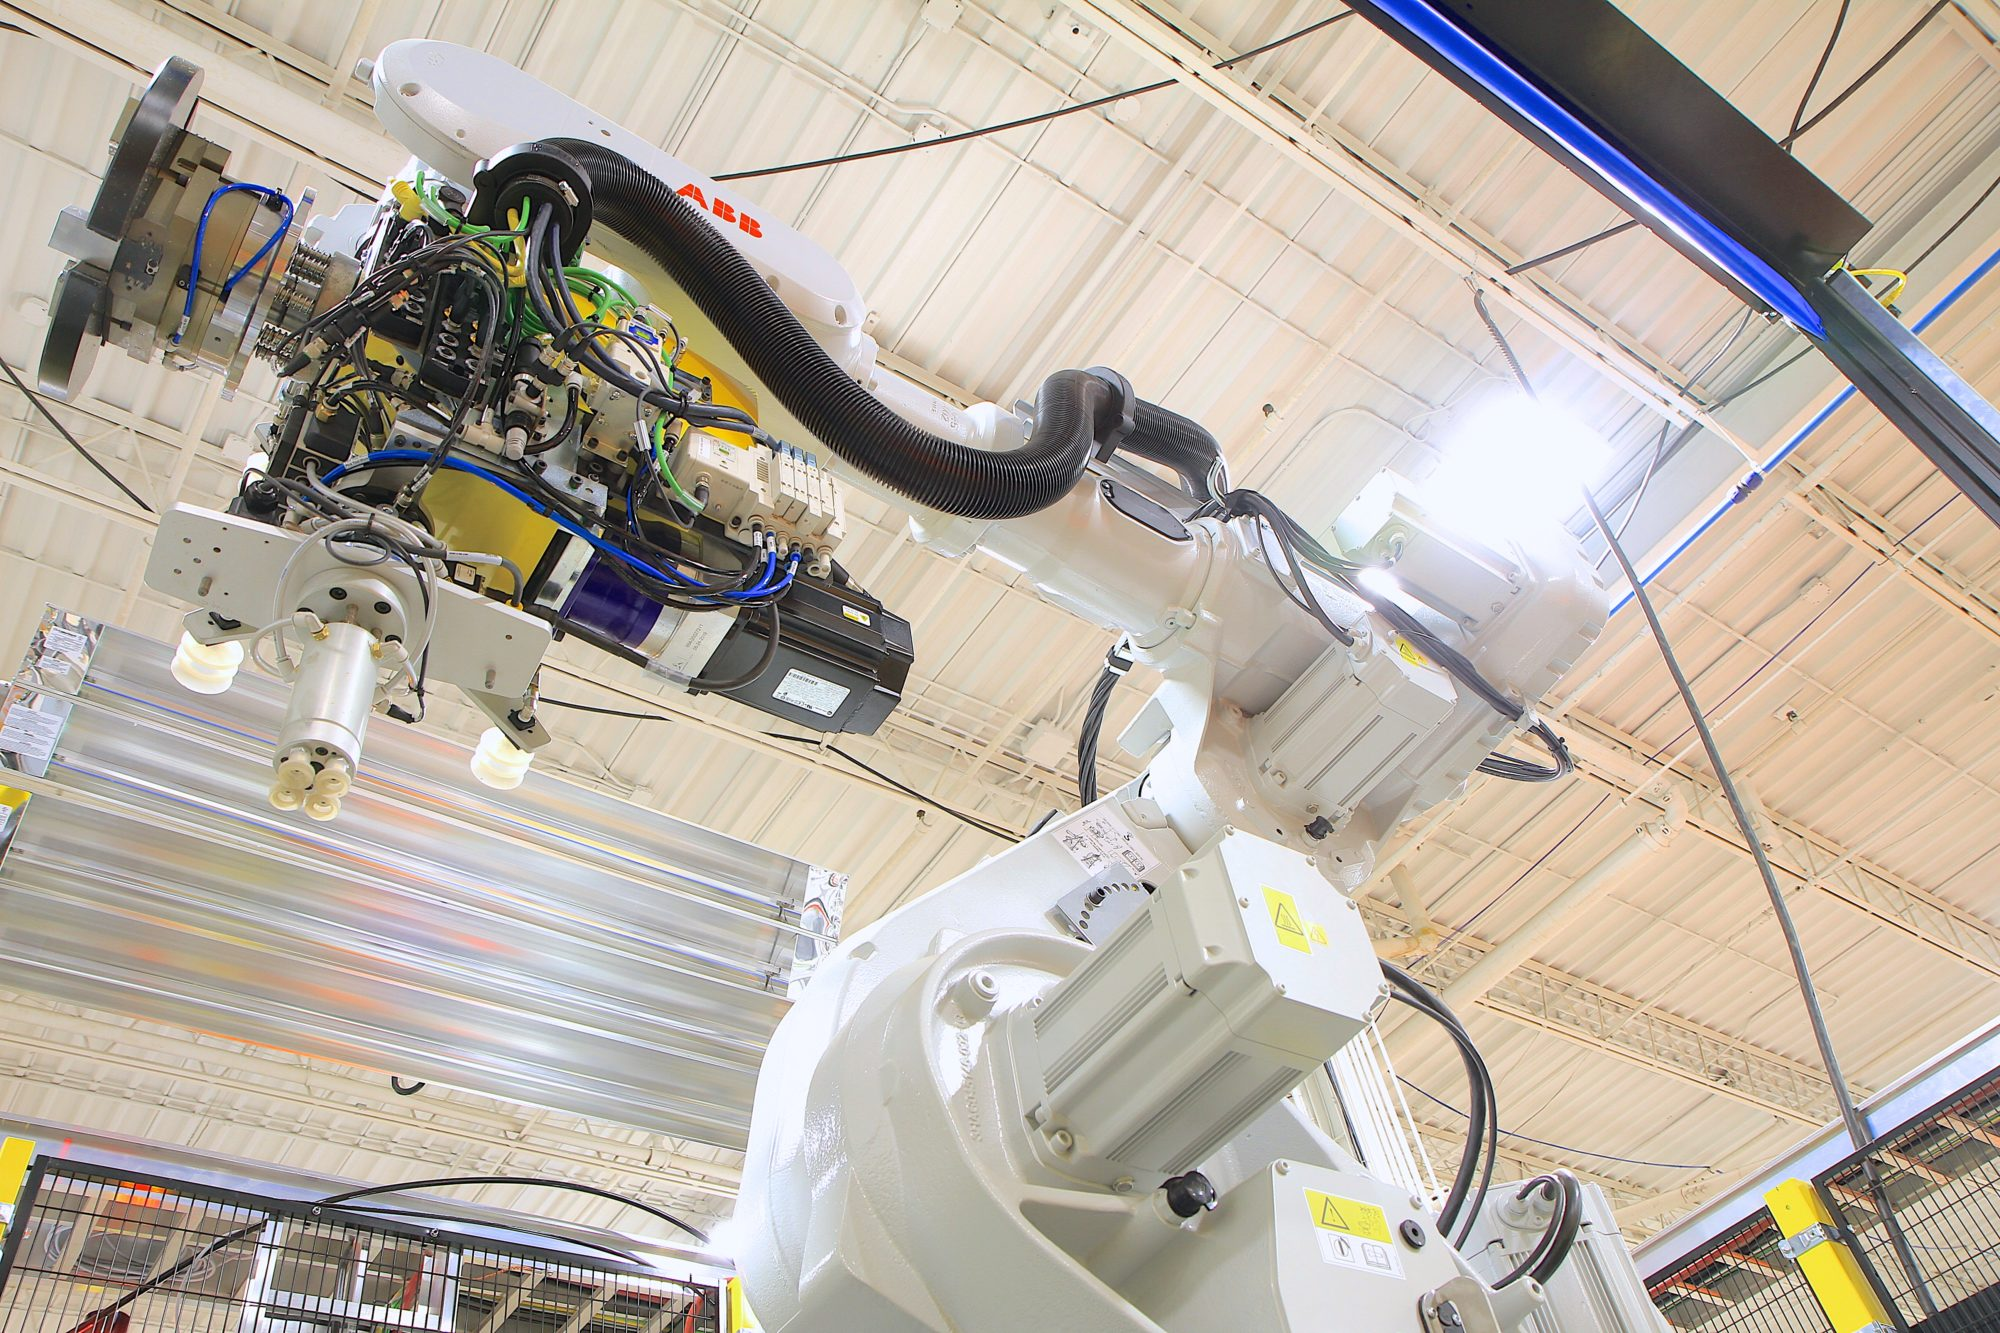 Thread & pipe automated robotic system